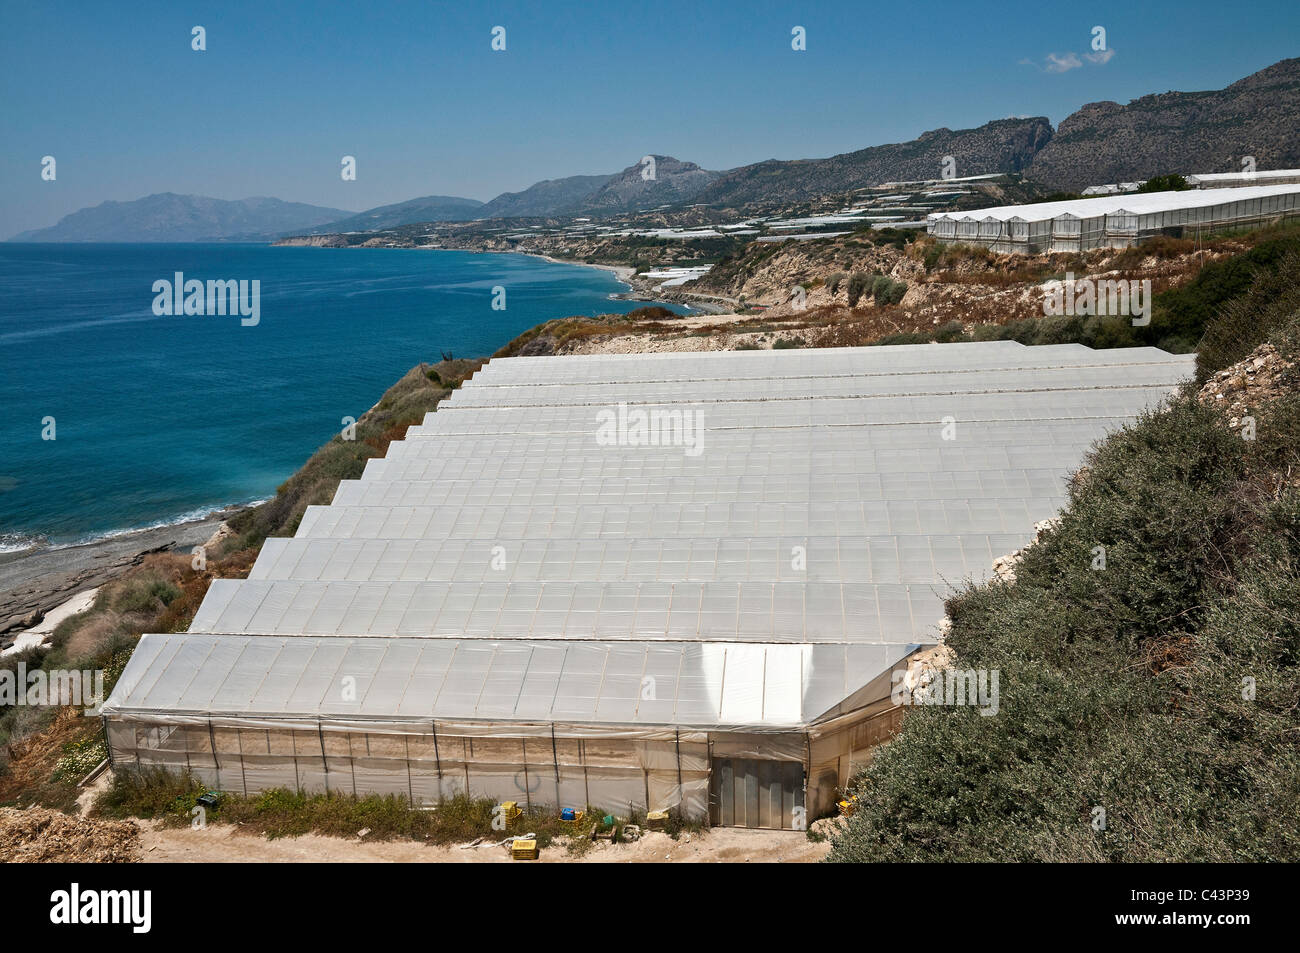 Plasticulture, plastic green houses, spreading along the coast between Mirtos and Sidonia in south eastern Crete, - Stock Image